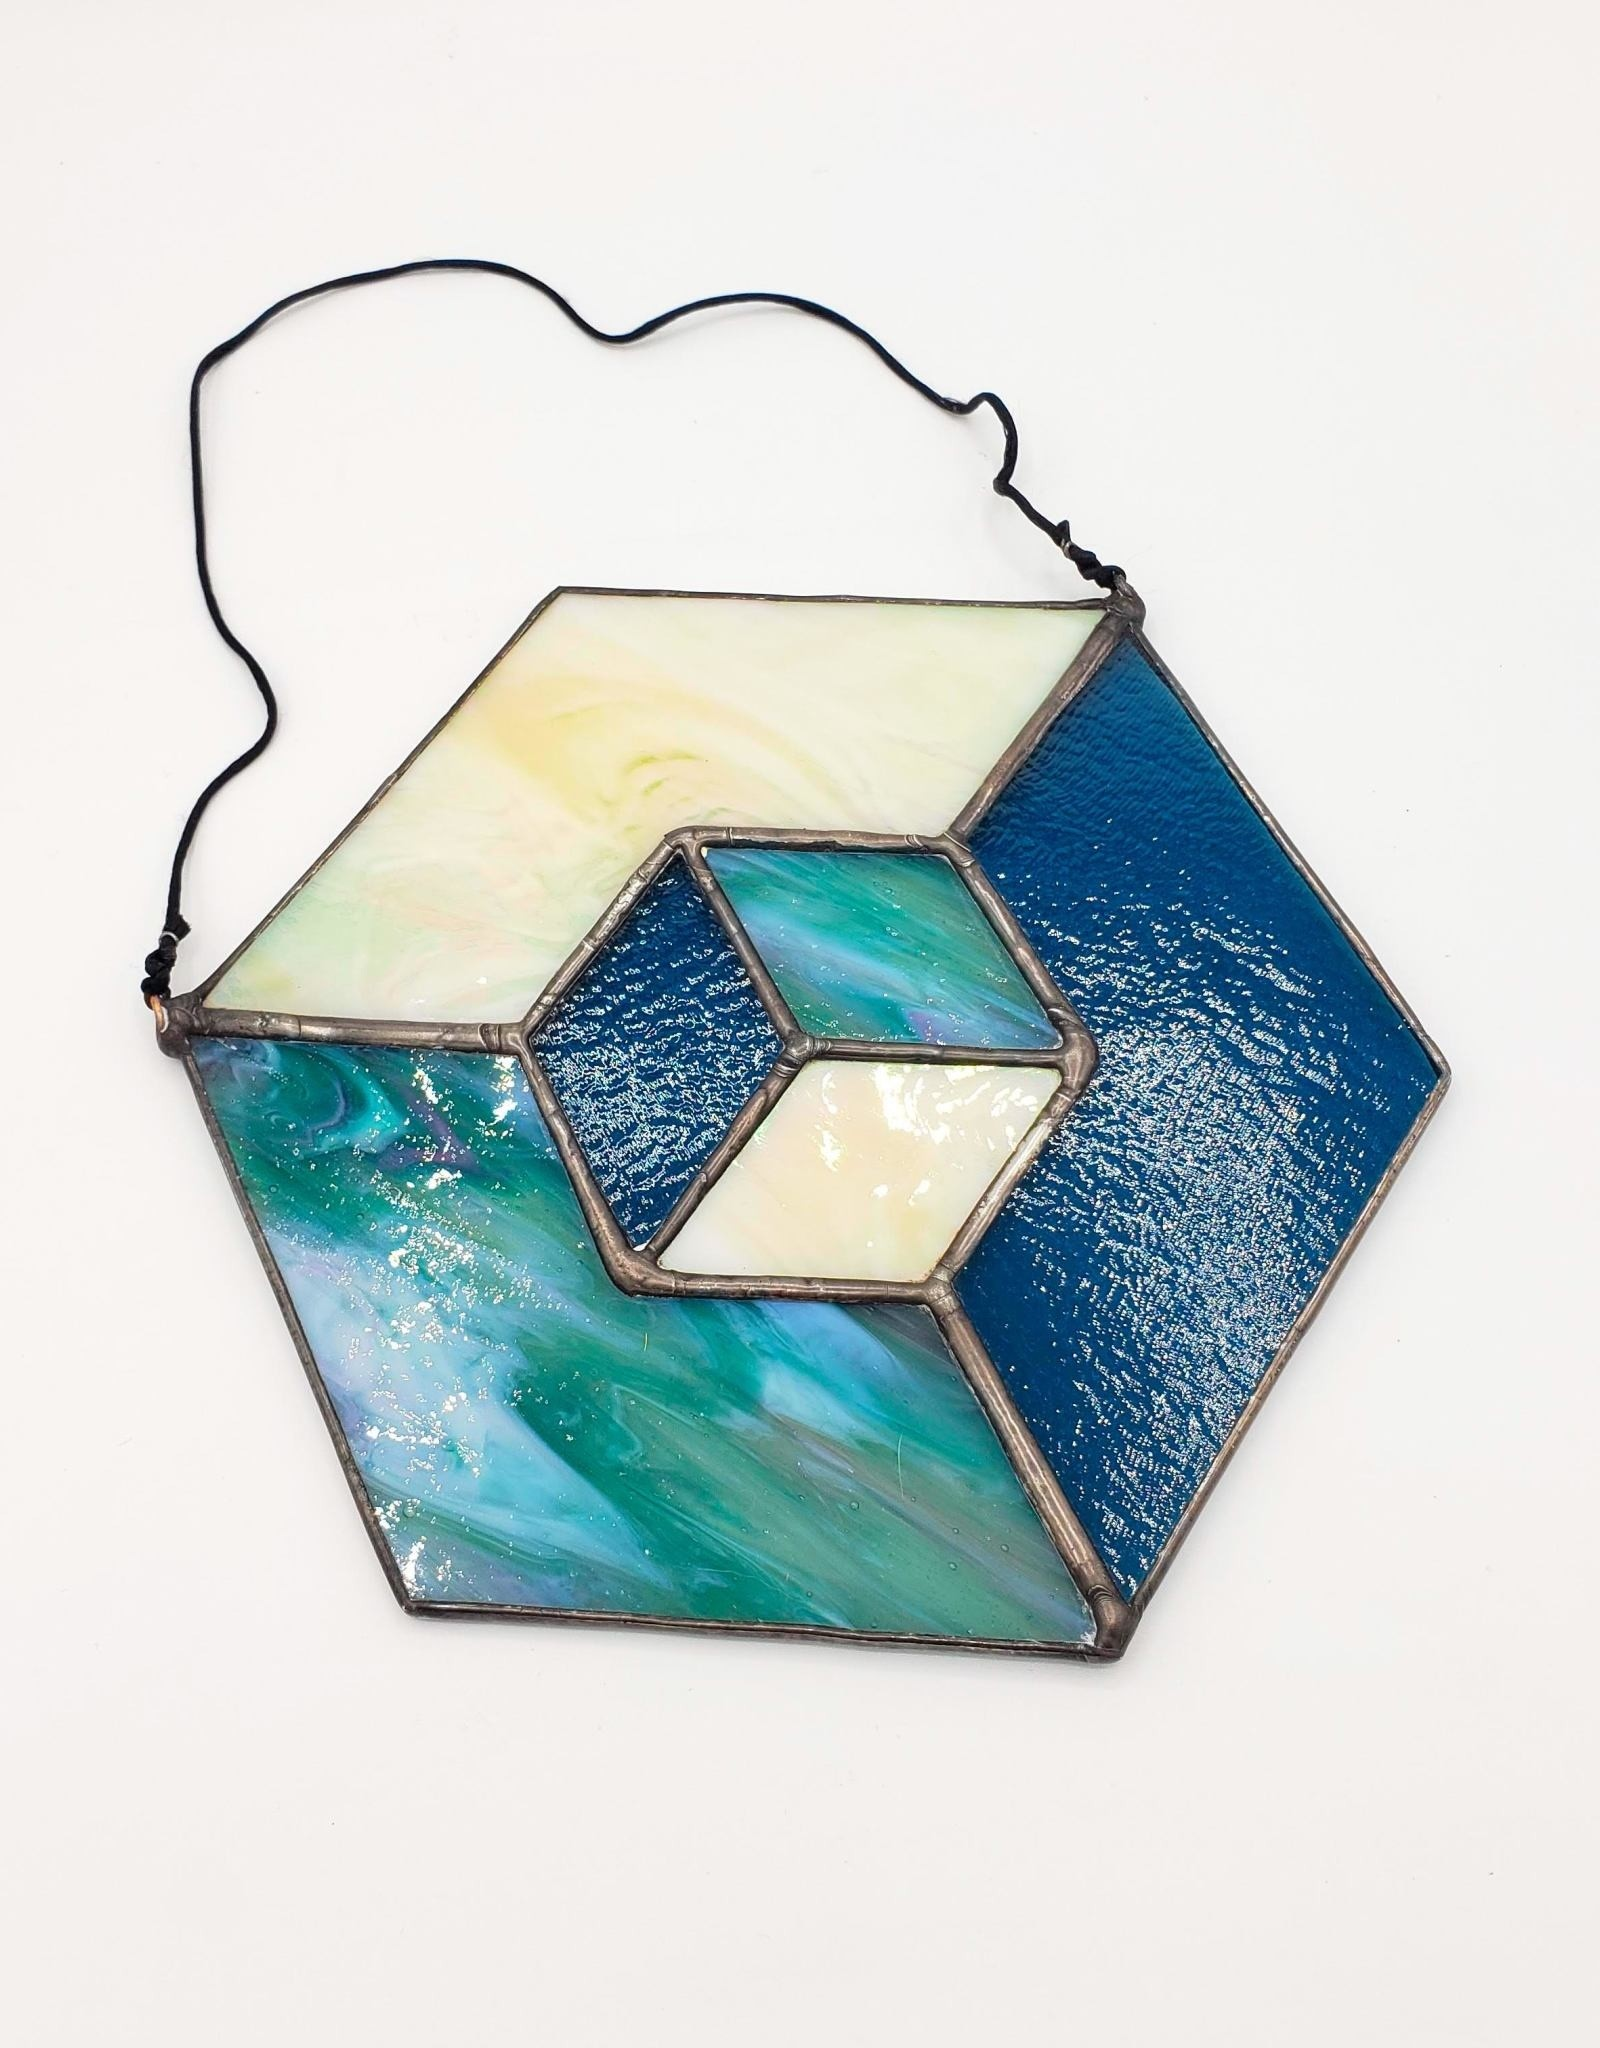 Redux Hex Faceted Stained Glass Suncatcher, Blues & Iridescent